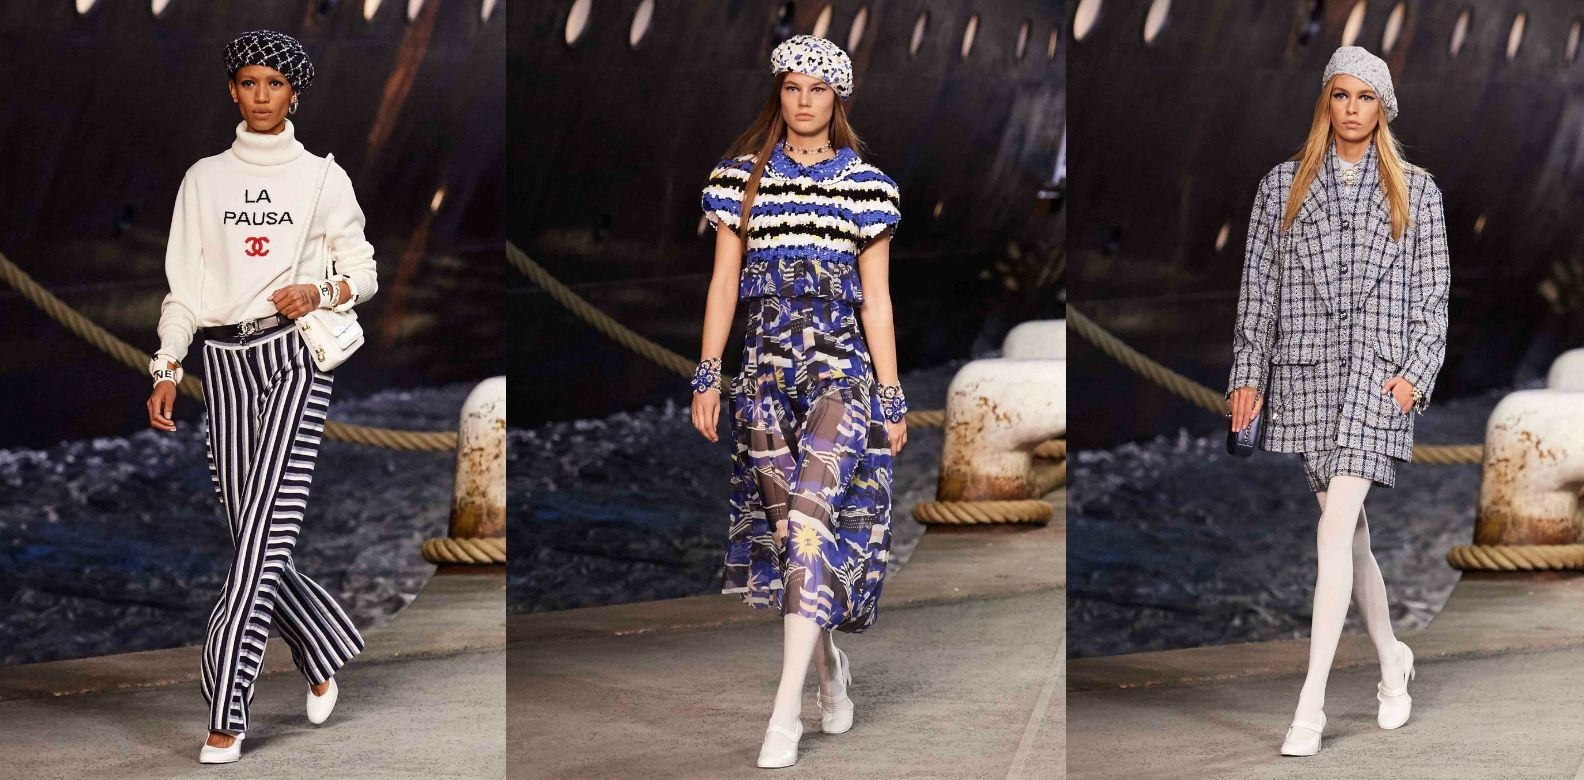 Chanel Takes Us On A Voyage With The Nautical Themed Cruise 2019 Show